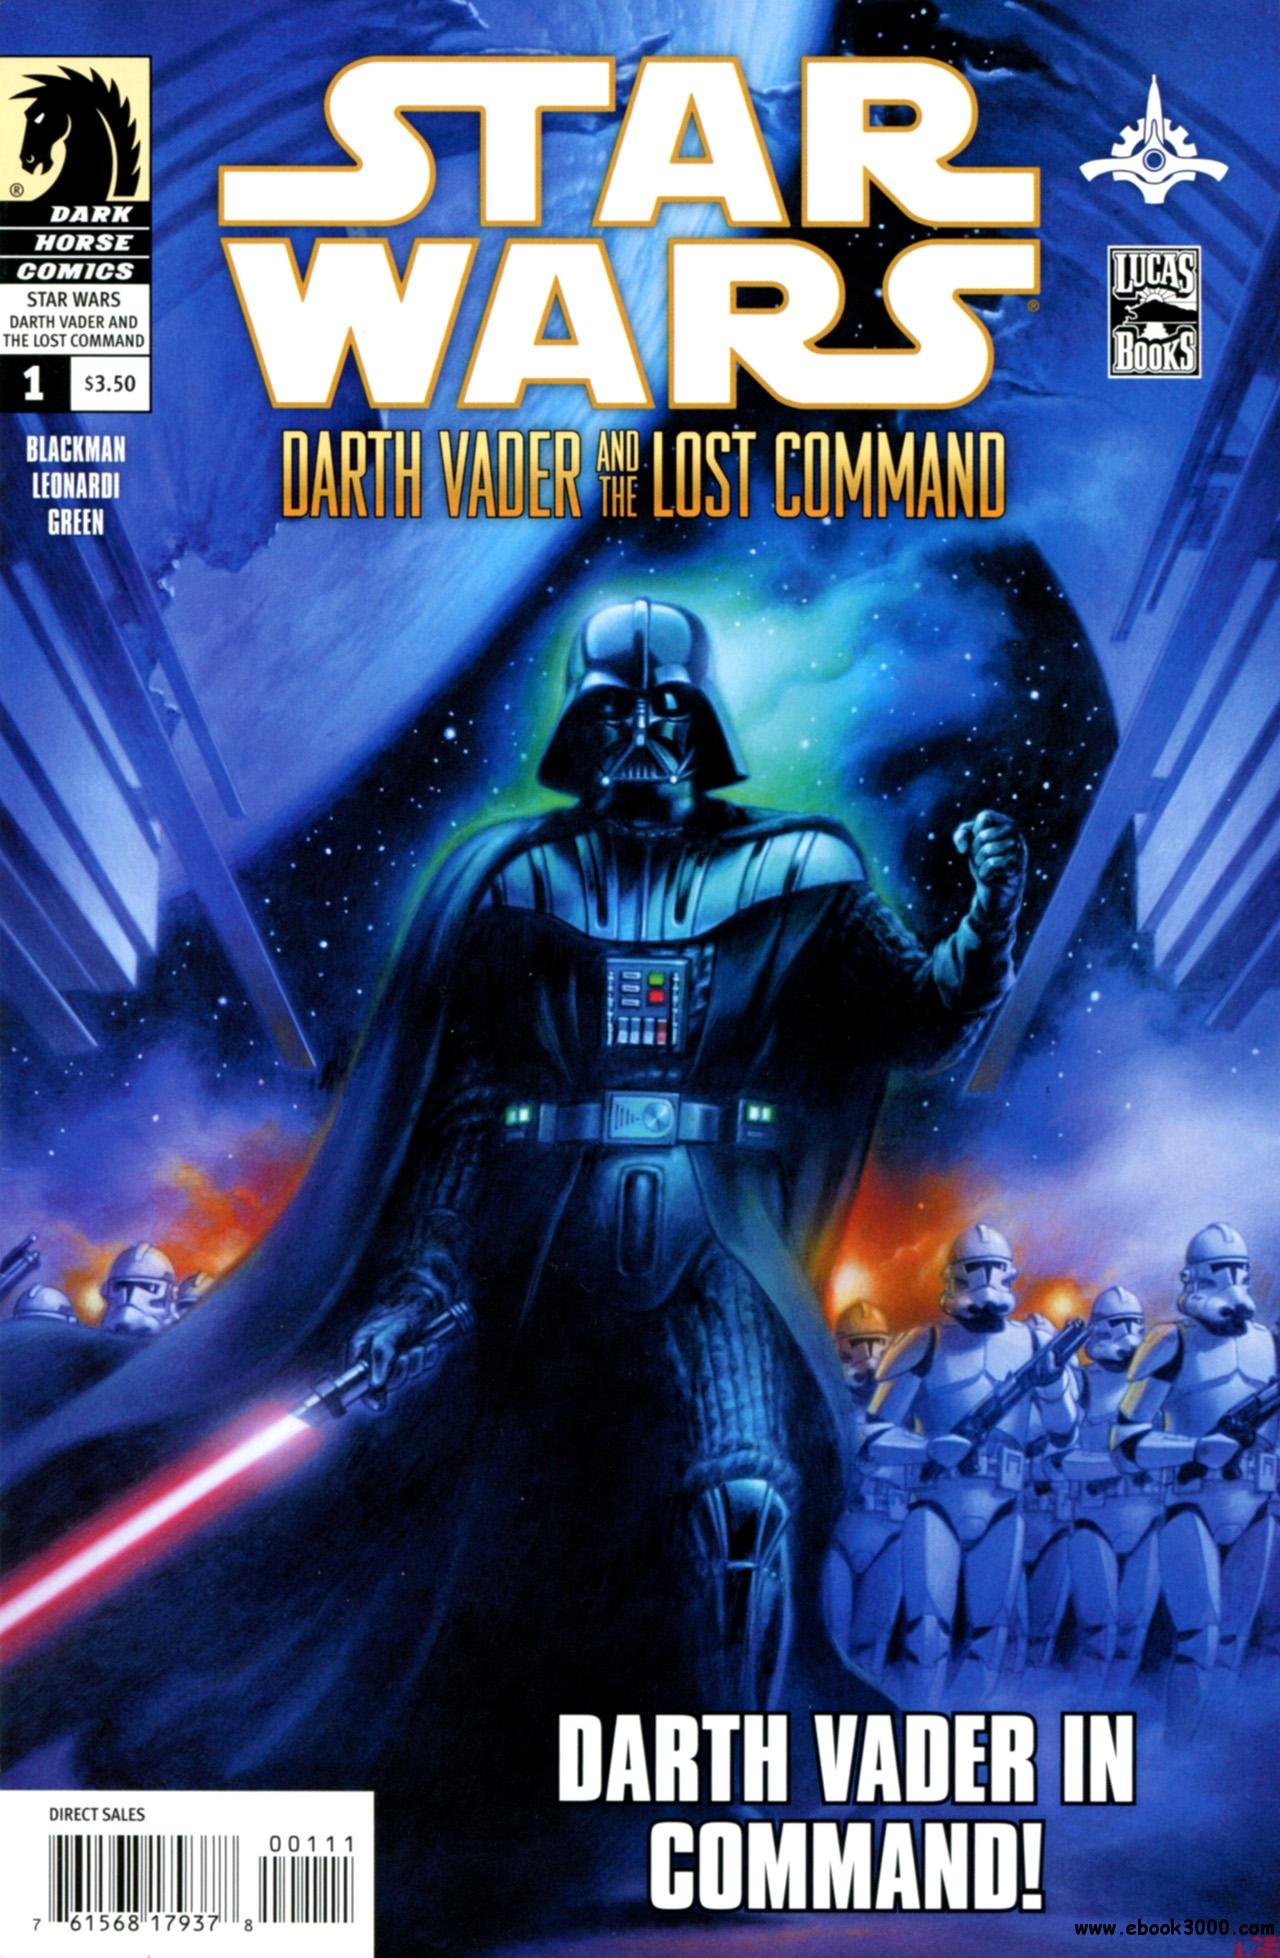 Star Wars: Darth Vader and the Lost Command #1-5 [complete] free download